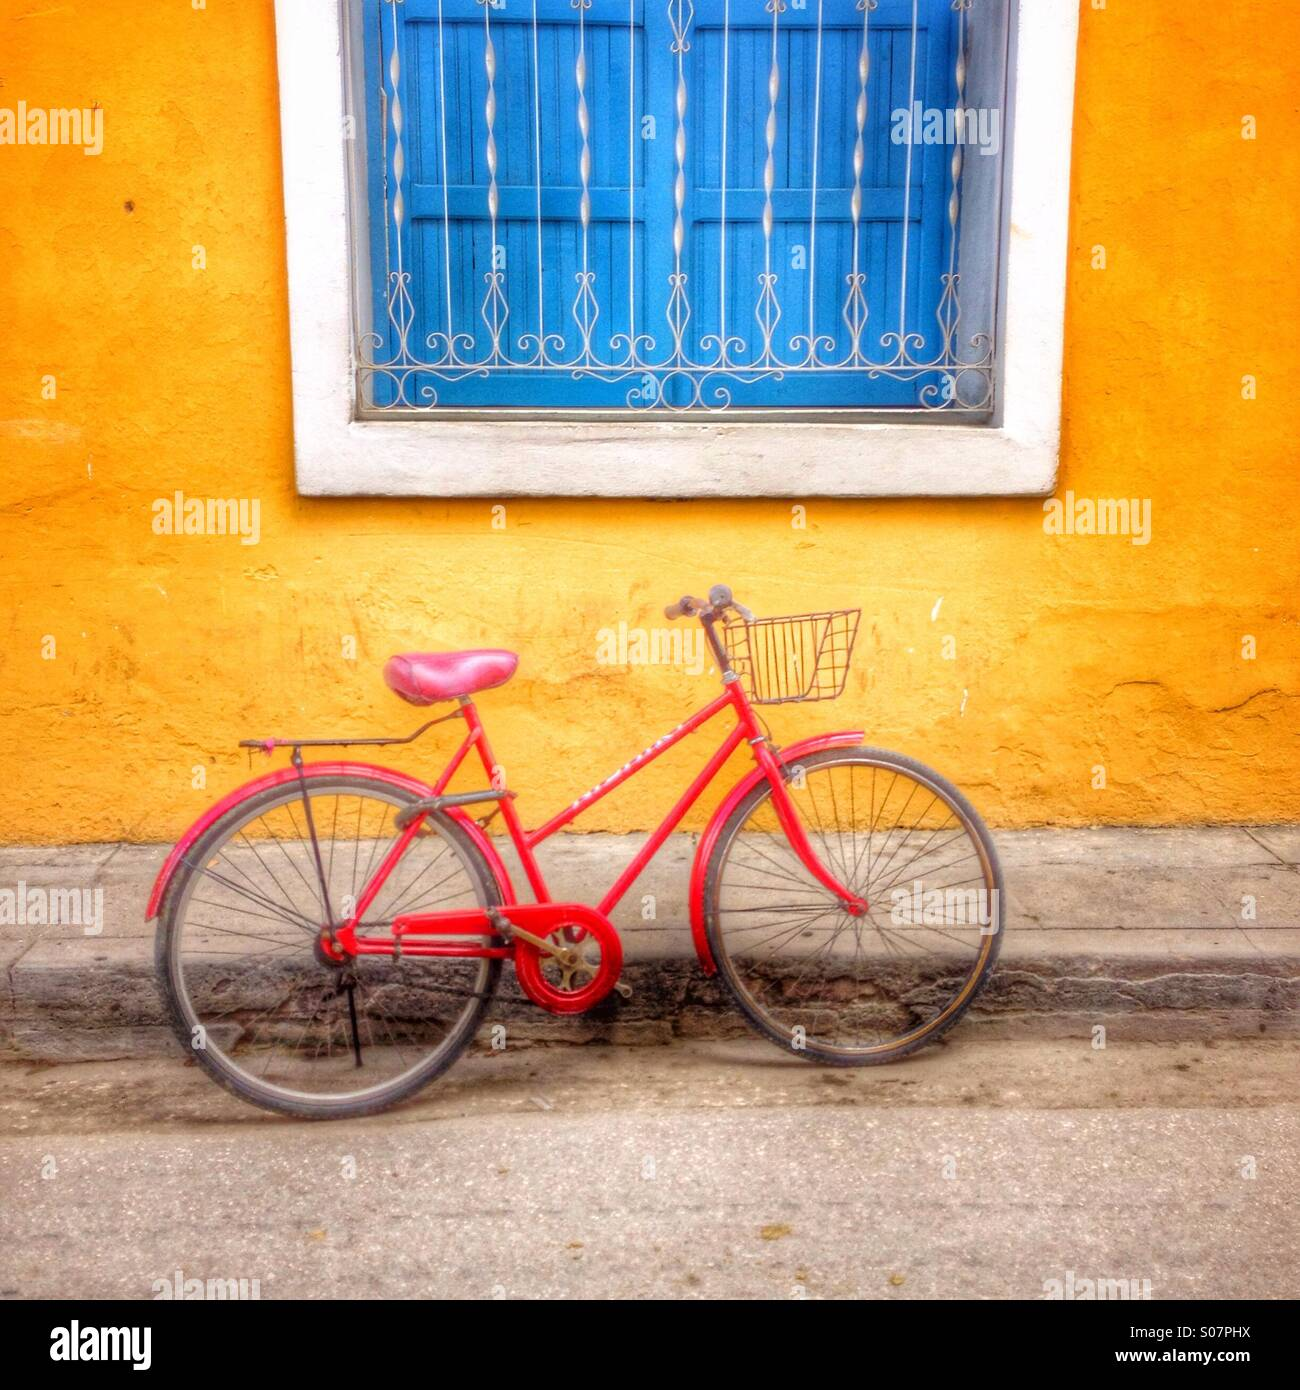 Pictorial image of red painted bicycle set against yellow painted wall with blue painted shuttered window. Trinidad - Stock Image